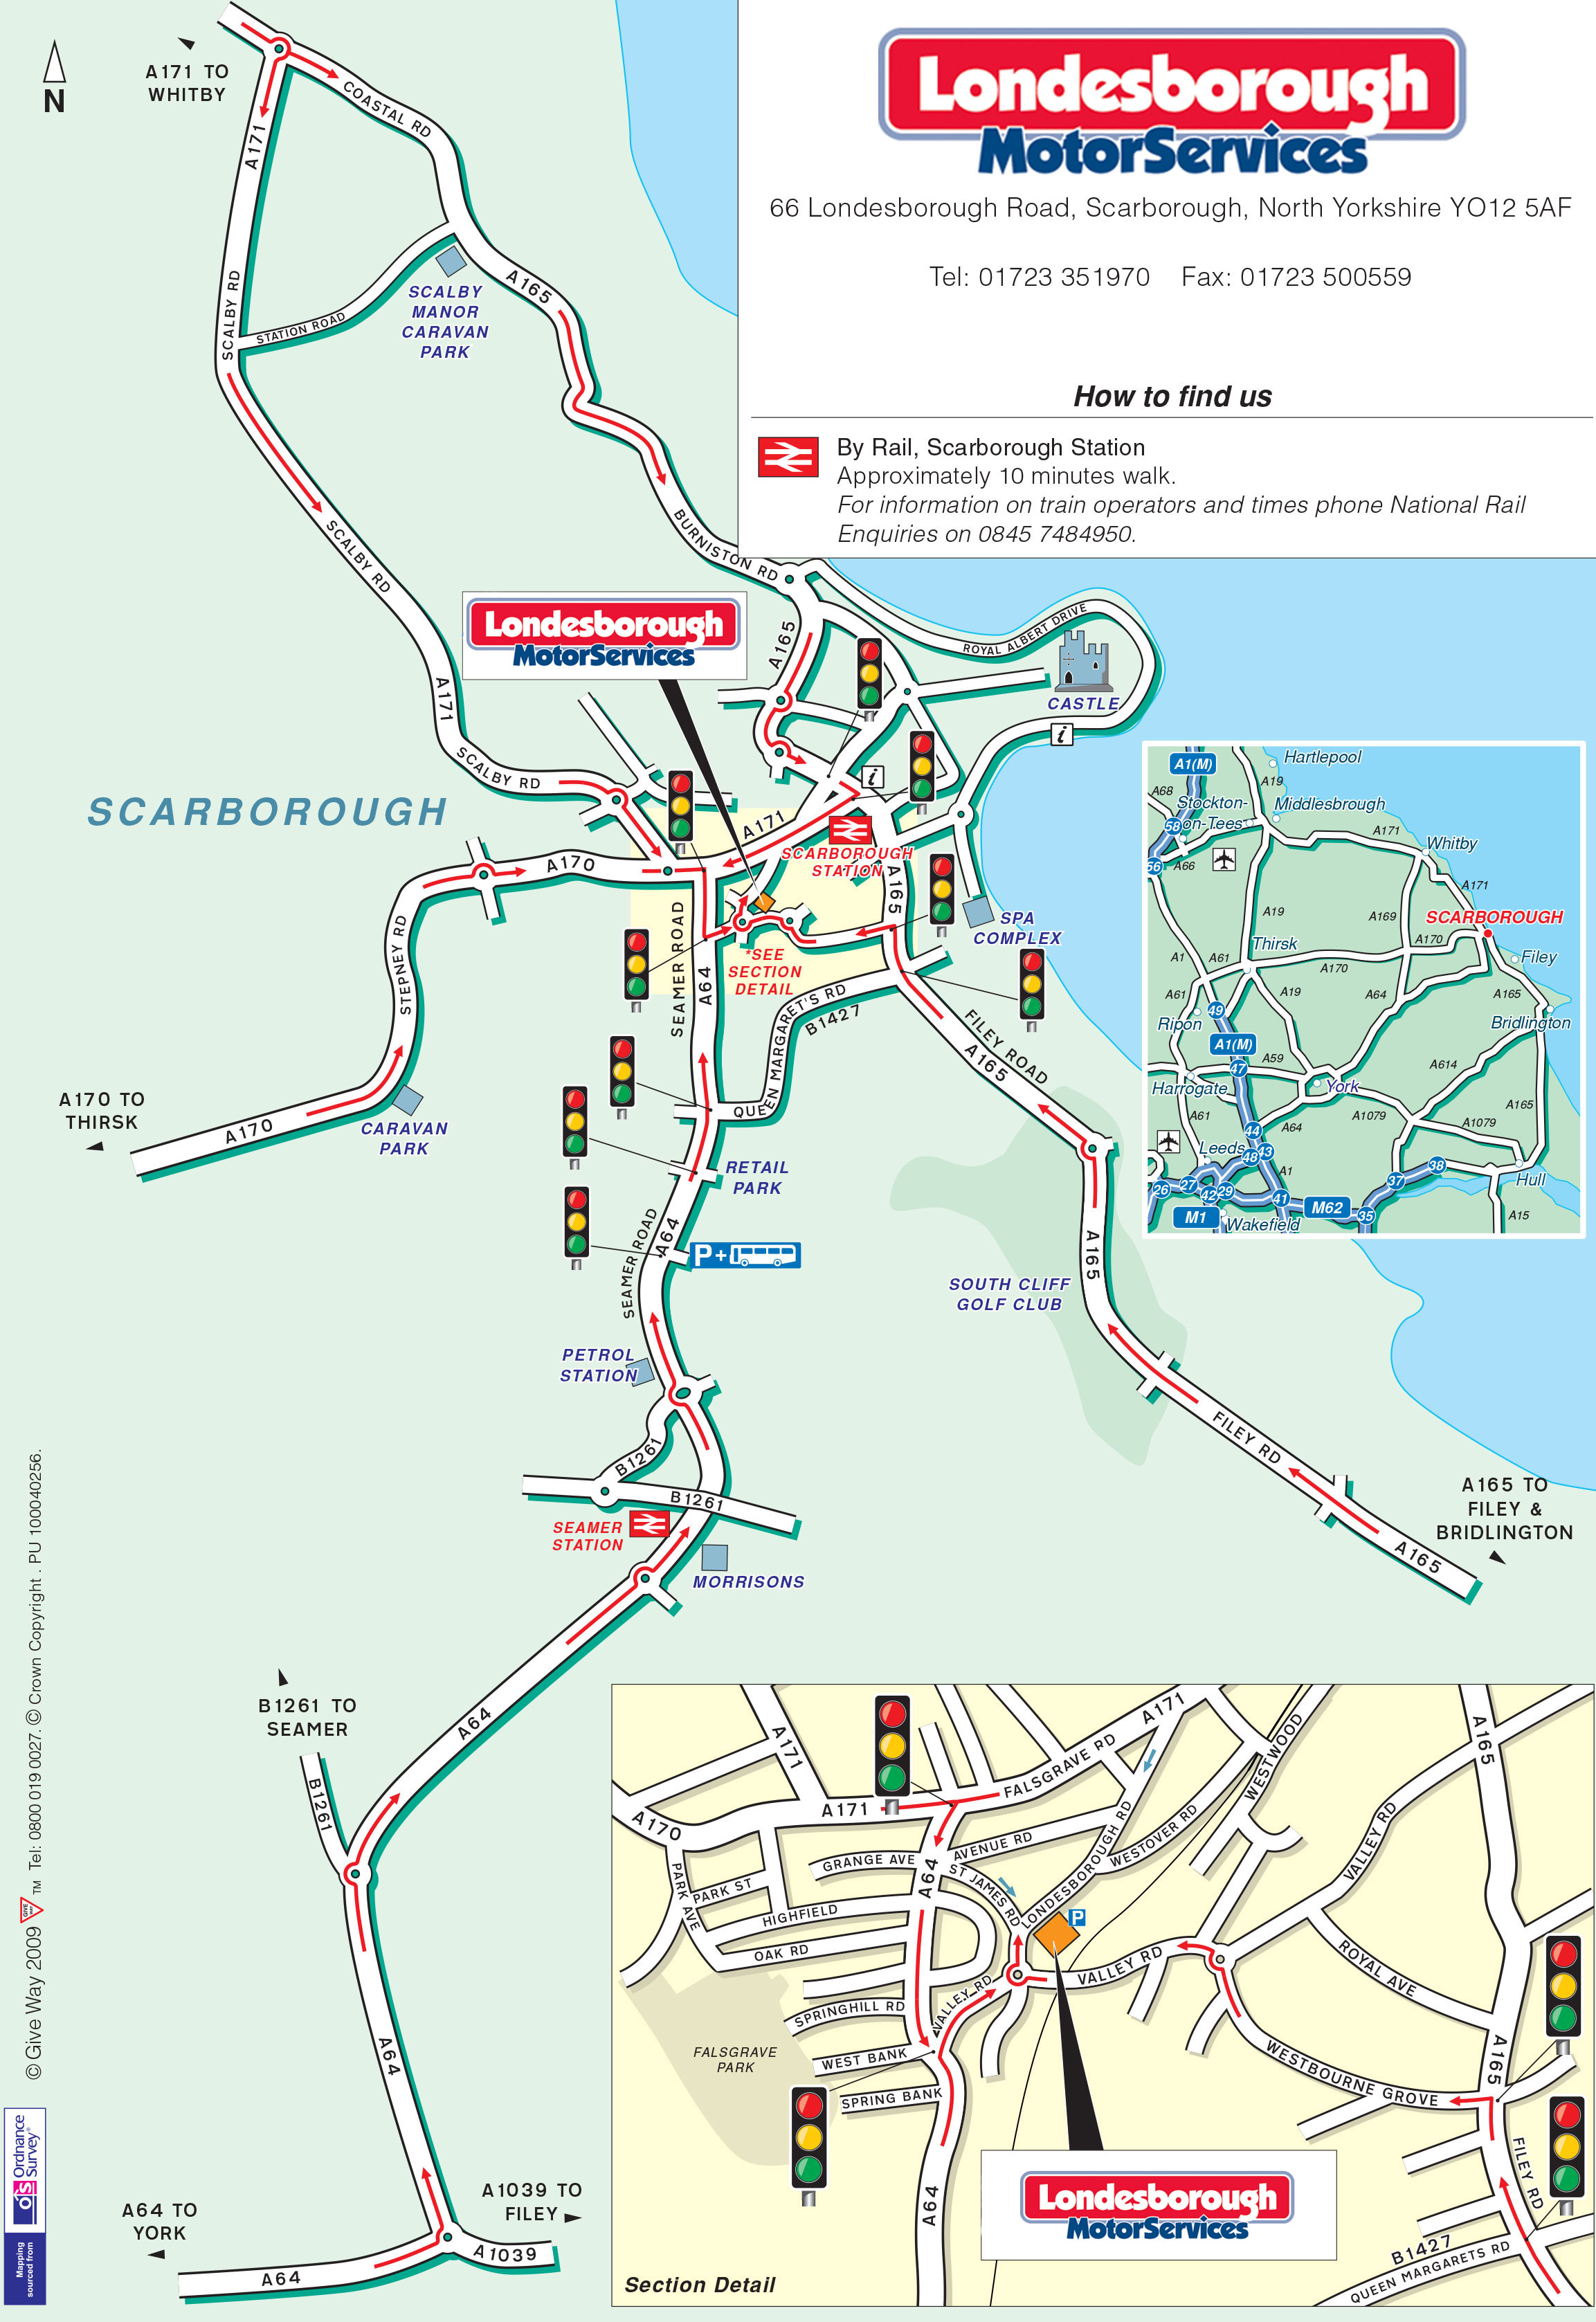 Londesborough Motor Services Map of Scarborough